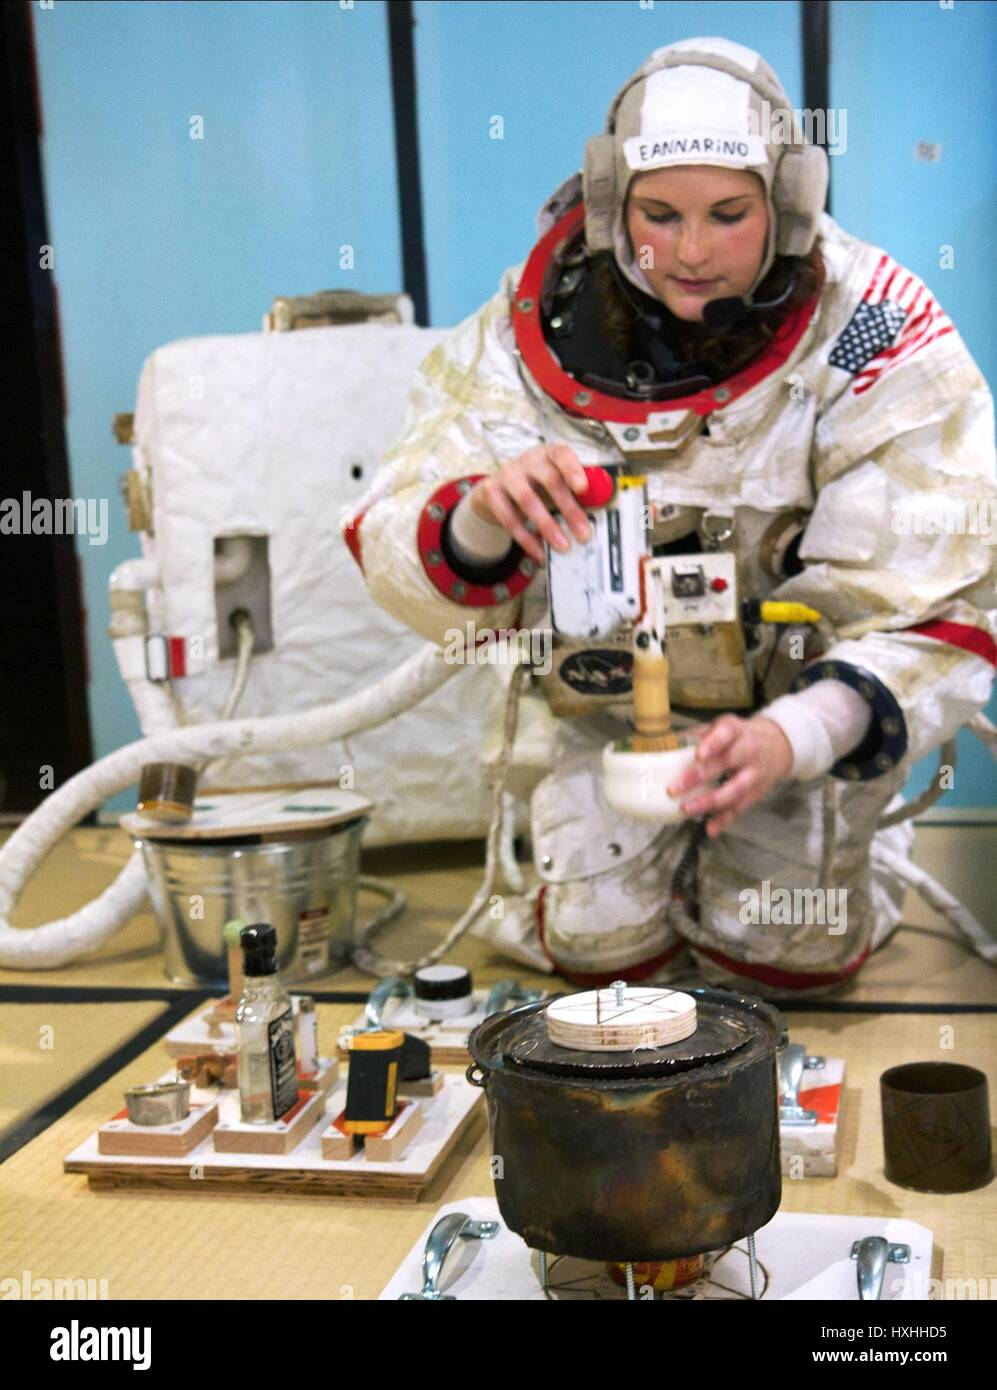 CDR. MARY EANNARINO A SPACE PROGRAM (2015) - Stock Image